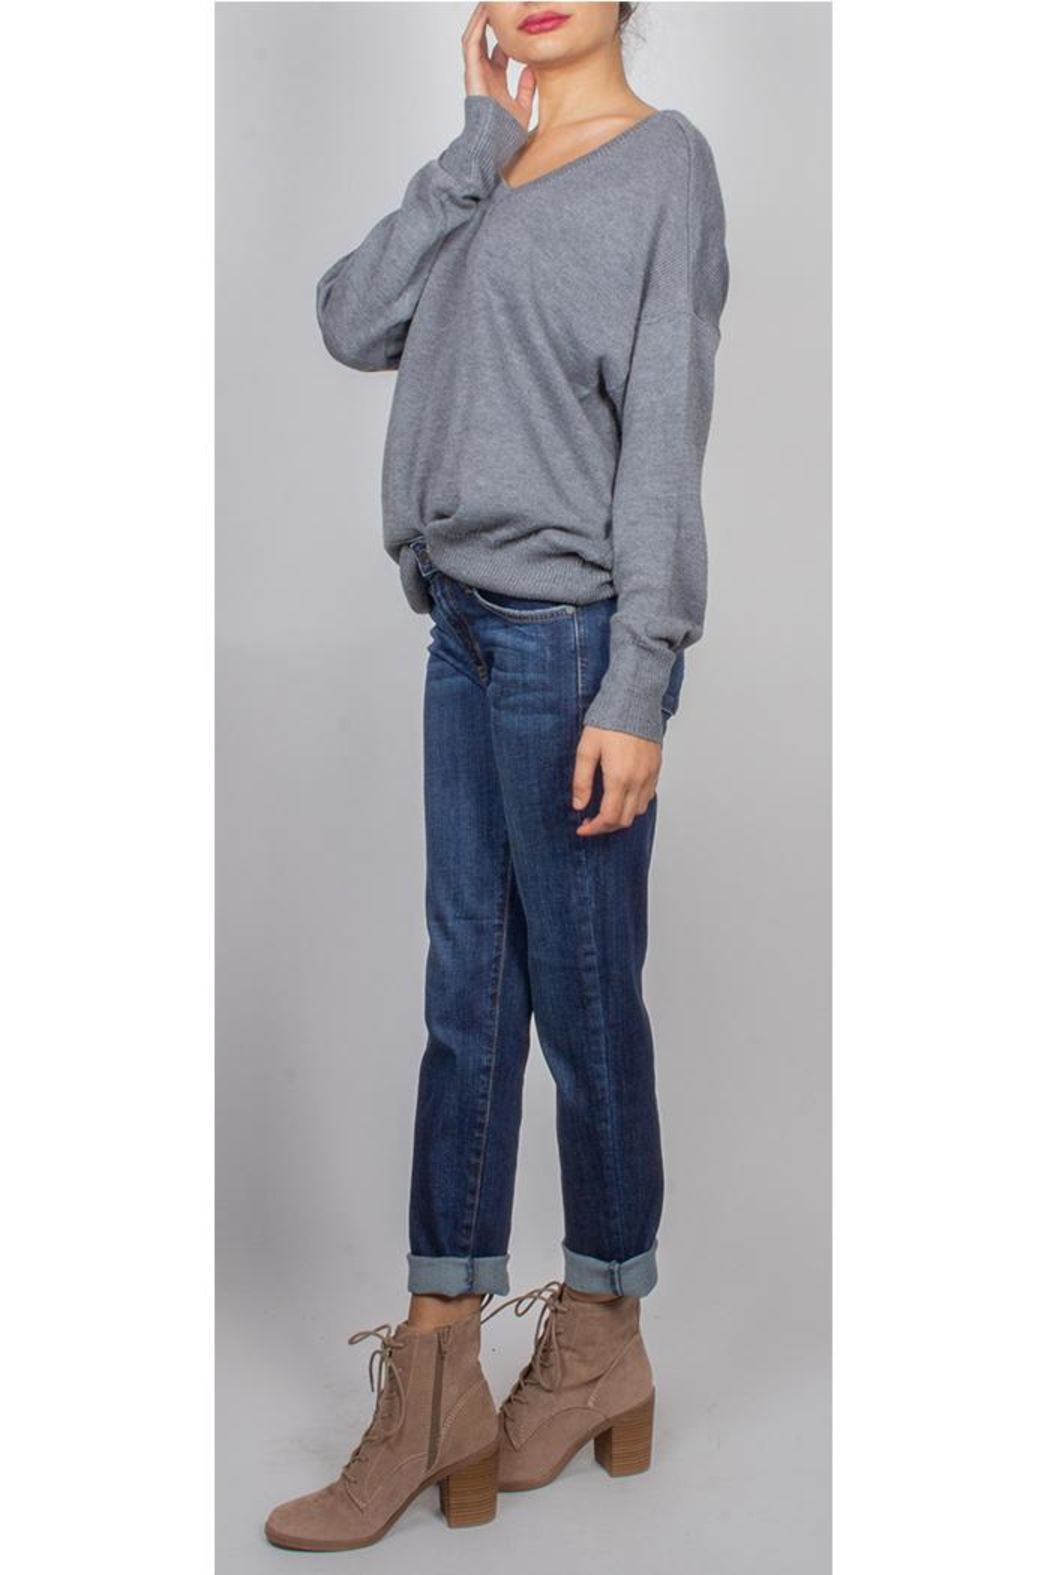 279a46335b Audrey 3+1 Off Duty Knit-Sweater from Los Angeles by Goldie s ...